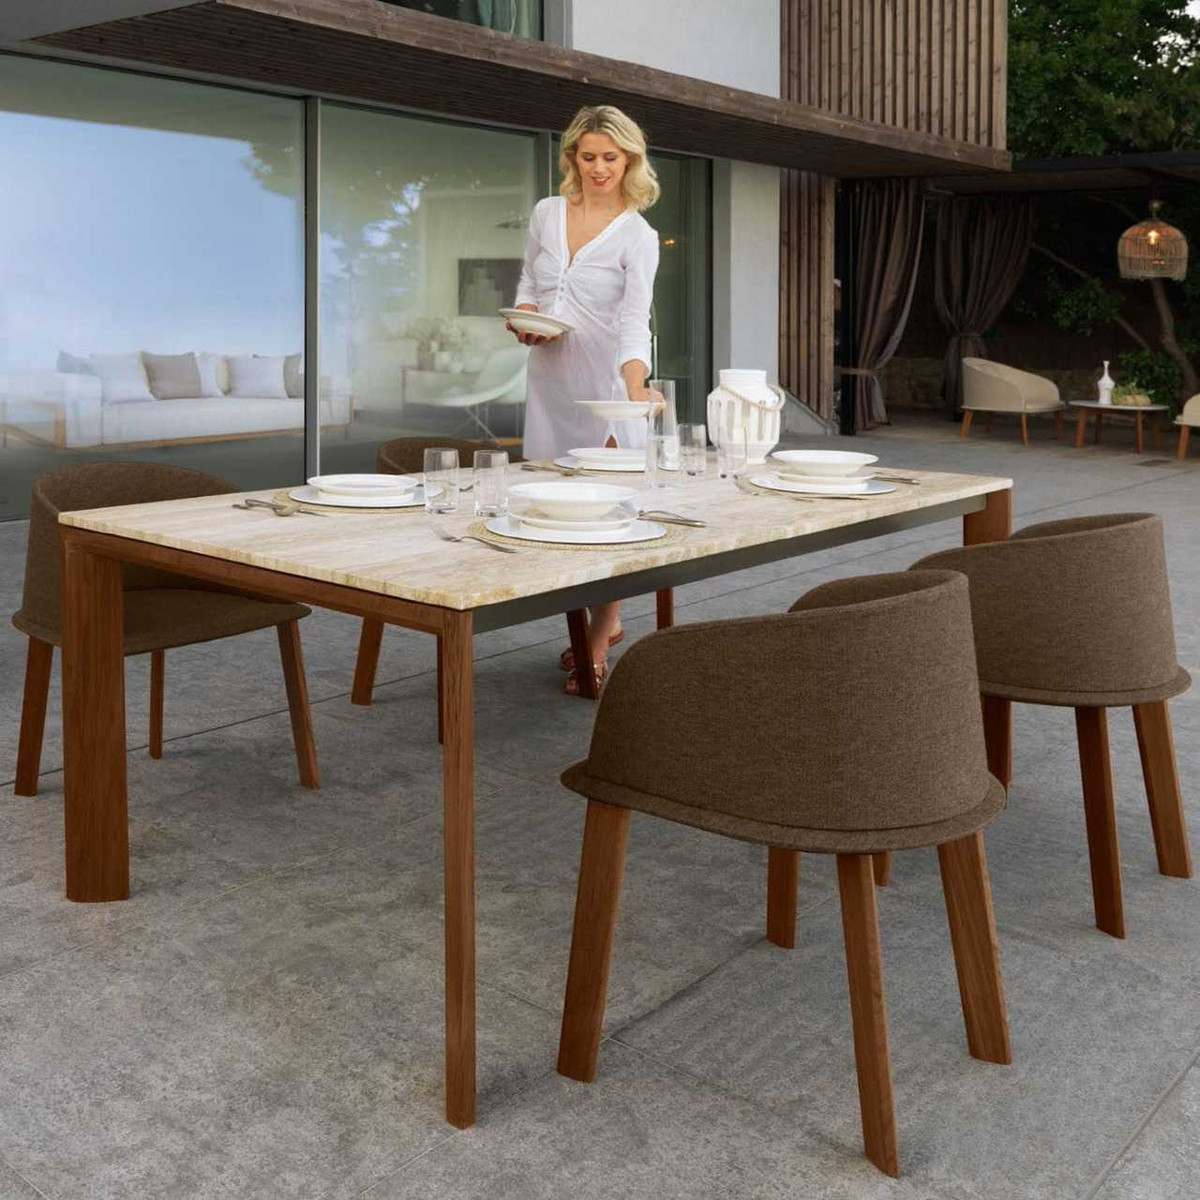 Cleo Outdoor Dining Table For Sale In Auckland NZ - Outdoor dining table only